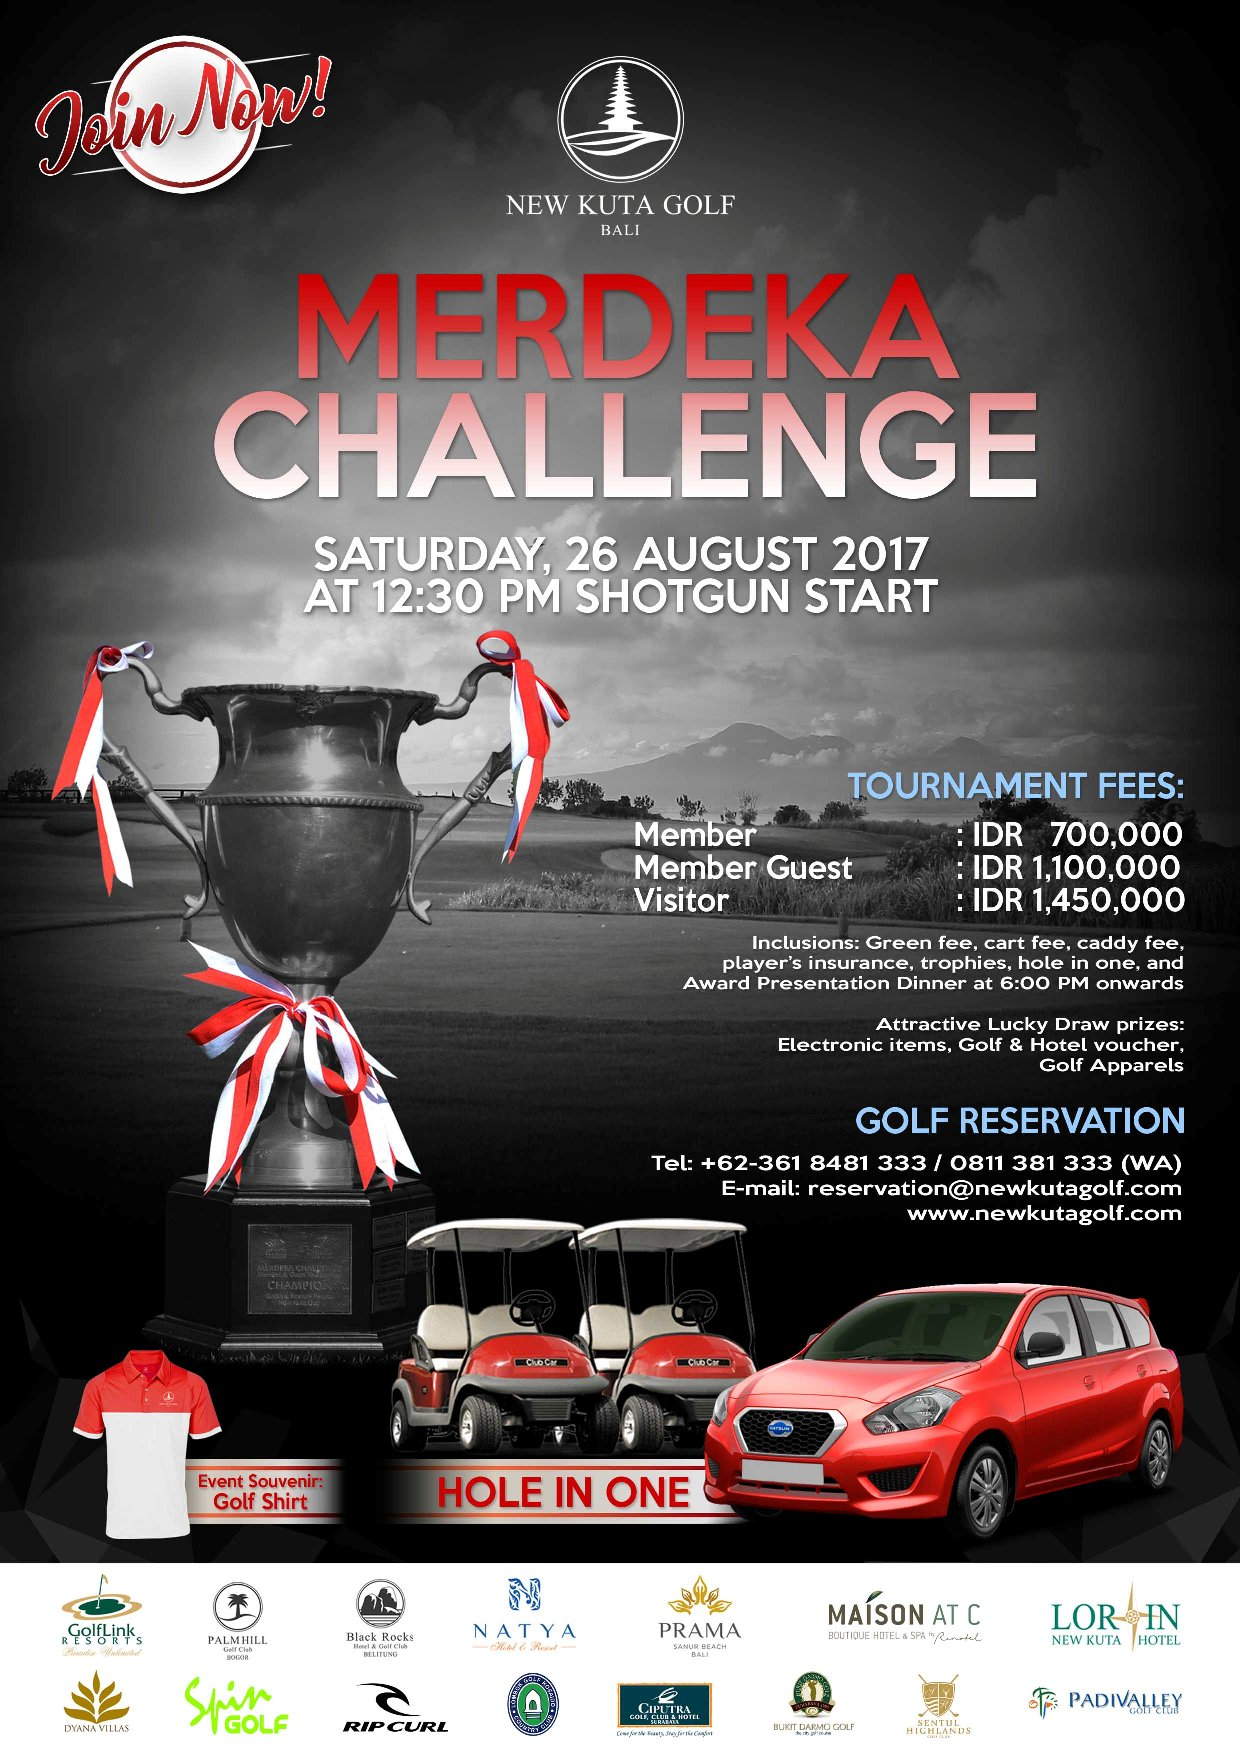 MERDEKA CHALLENGE GOLF TOURNAMENT